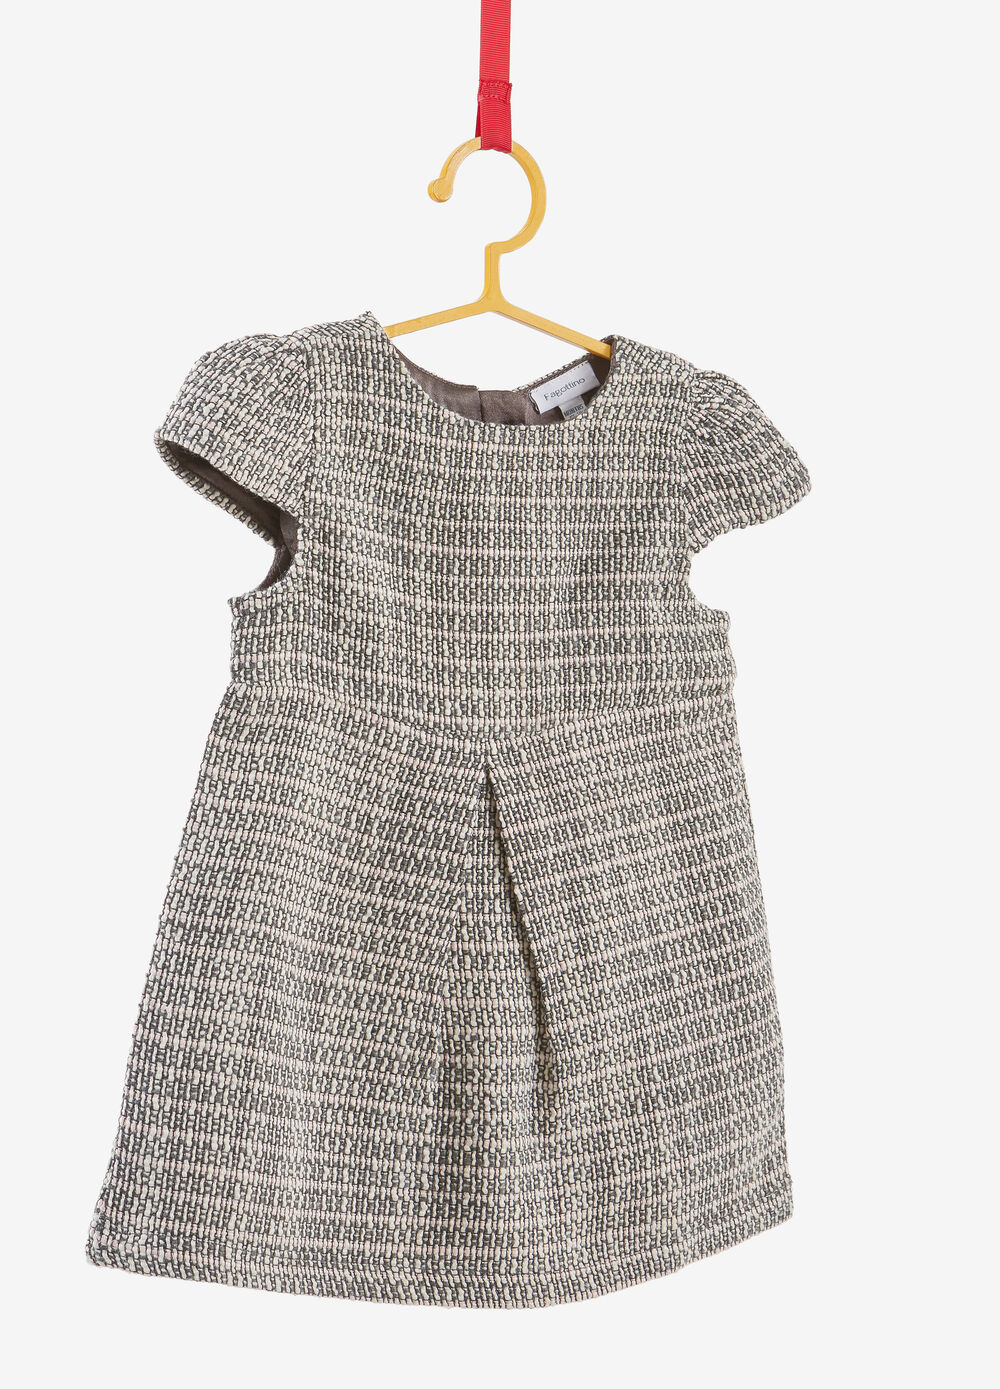 Dress in bouclé fabric with puff sleeves